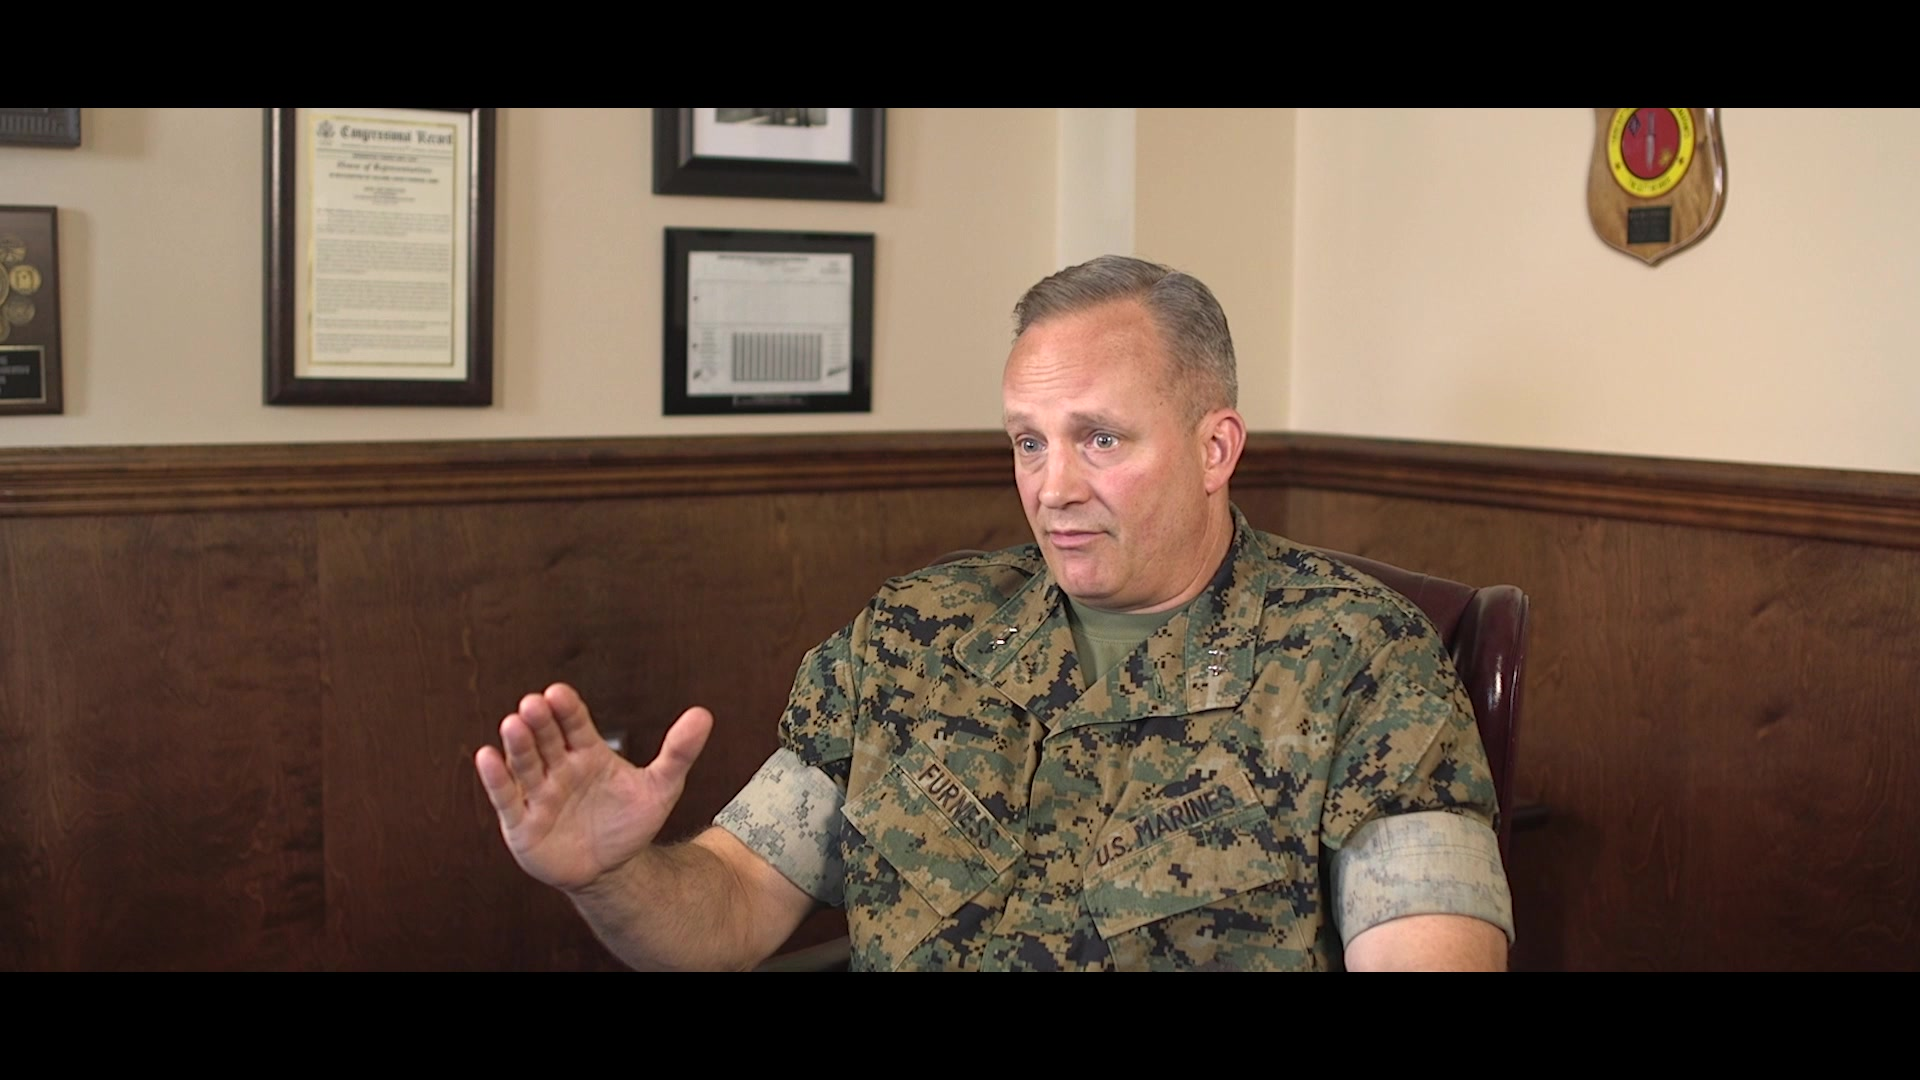 U.S. Marine Corps Maj. Gen. David J. Furness, the Commanding General (CG) of 2d Marine Division (MARDIV), reflects on the changes made to increase the lethality of 2d MARDIV as part of the series Reflections on Command at Camp Lejeune, North Carolina, May 28, 2020. Reflections on Command is a nine-week video series highlighting Furness' time as the 2d MARDIV CG leading up to his Change of Command in August 2020. (U.S. Marine Corps video by Lance Cpl. Andrew Smith)